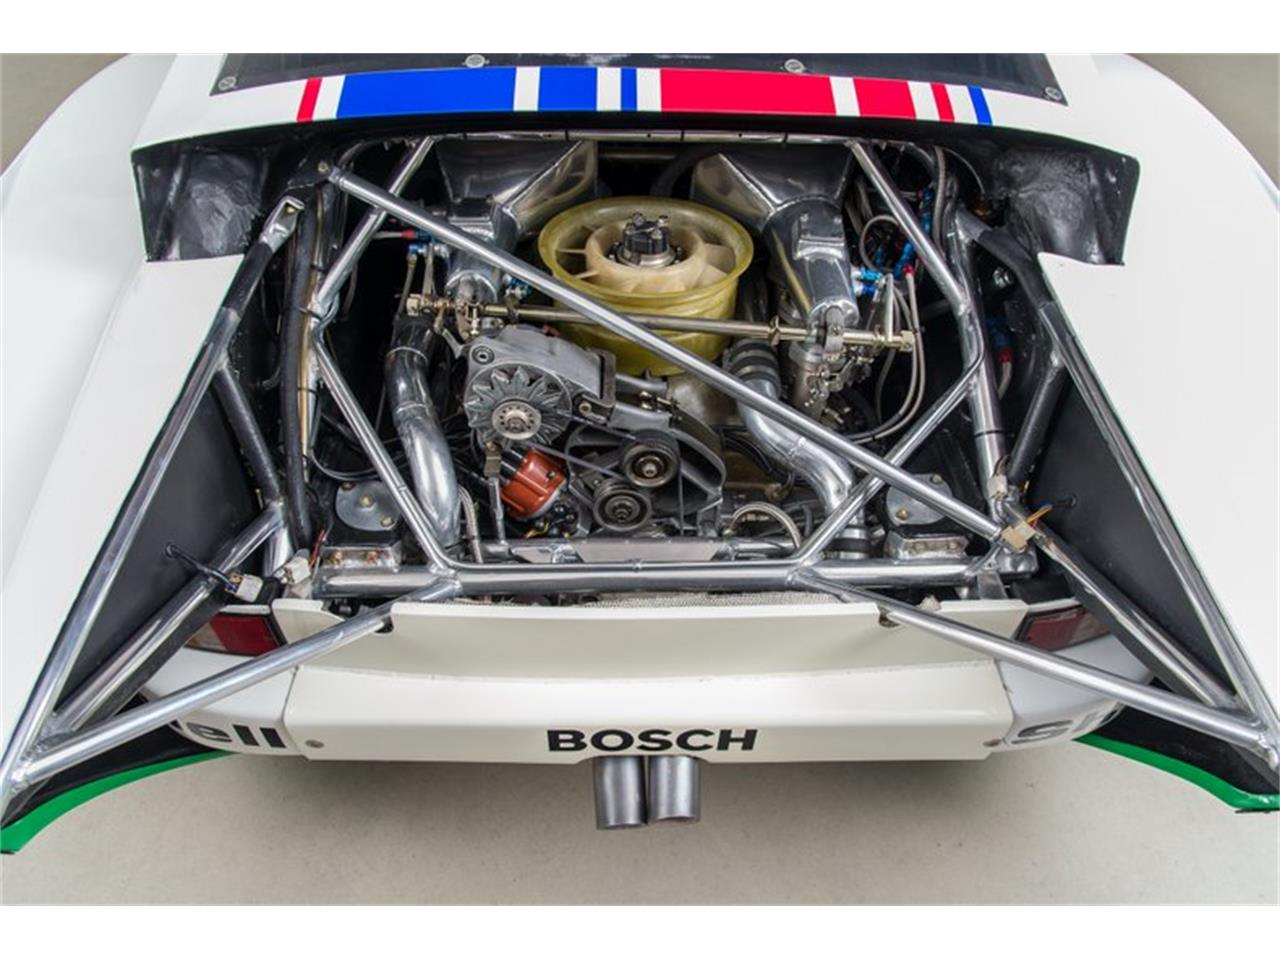 1979 Joest Porsche 935 for sale in Scotts Valley, CA – photo 56